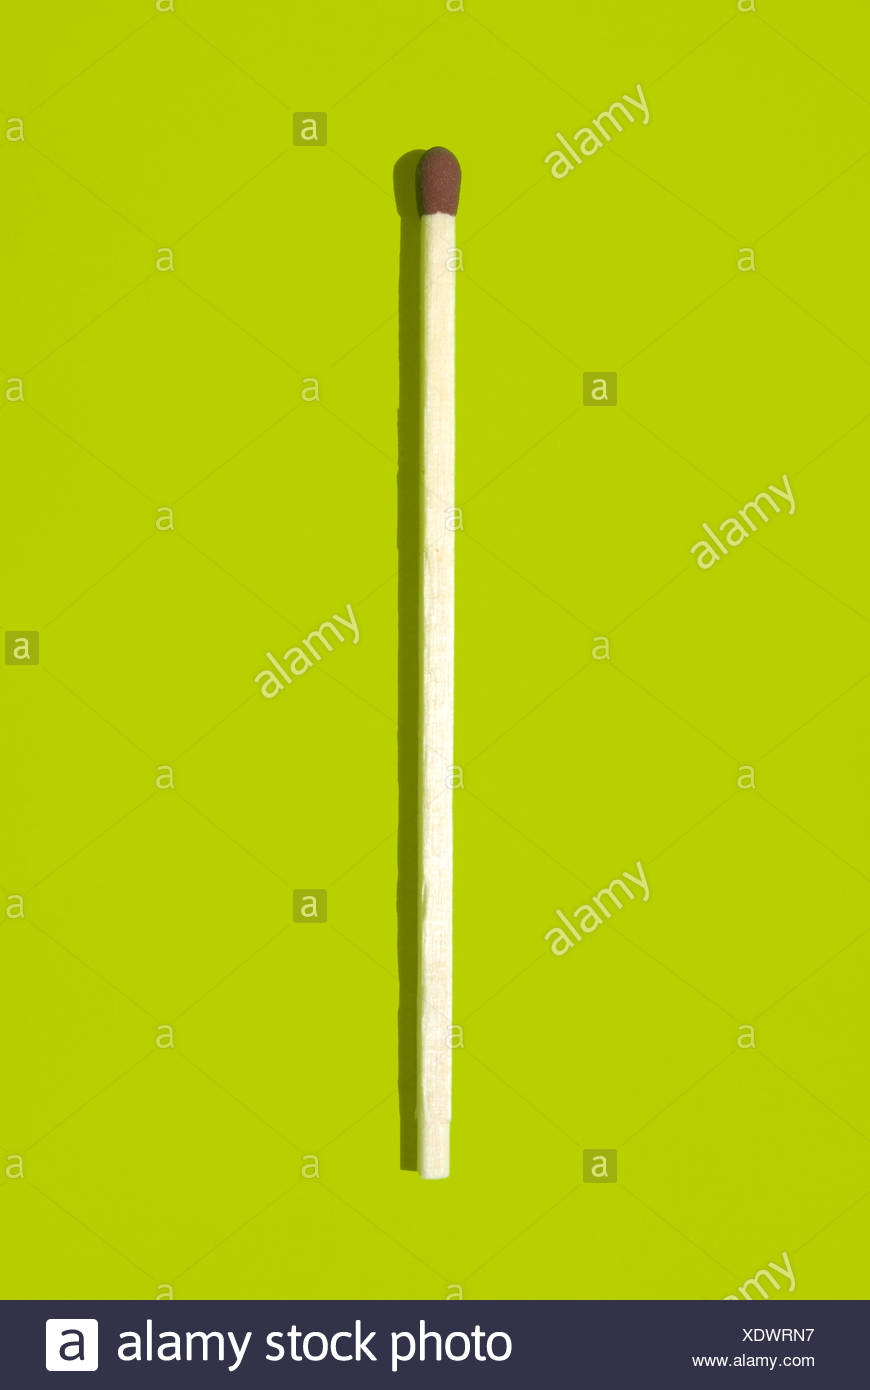 Matchstick, elevated view - Stock Image